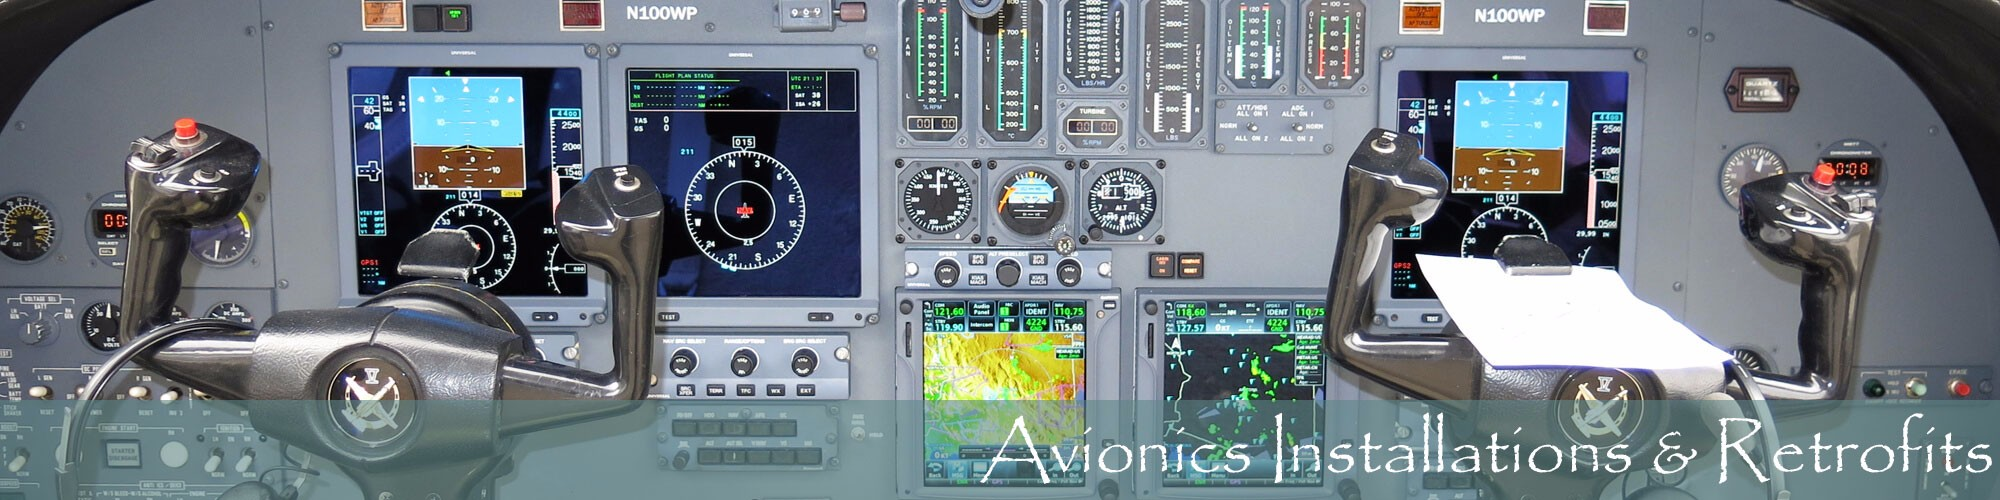 EAM-Avionics-Installations & Retrofits